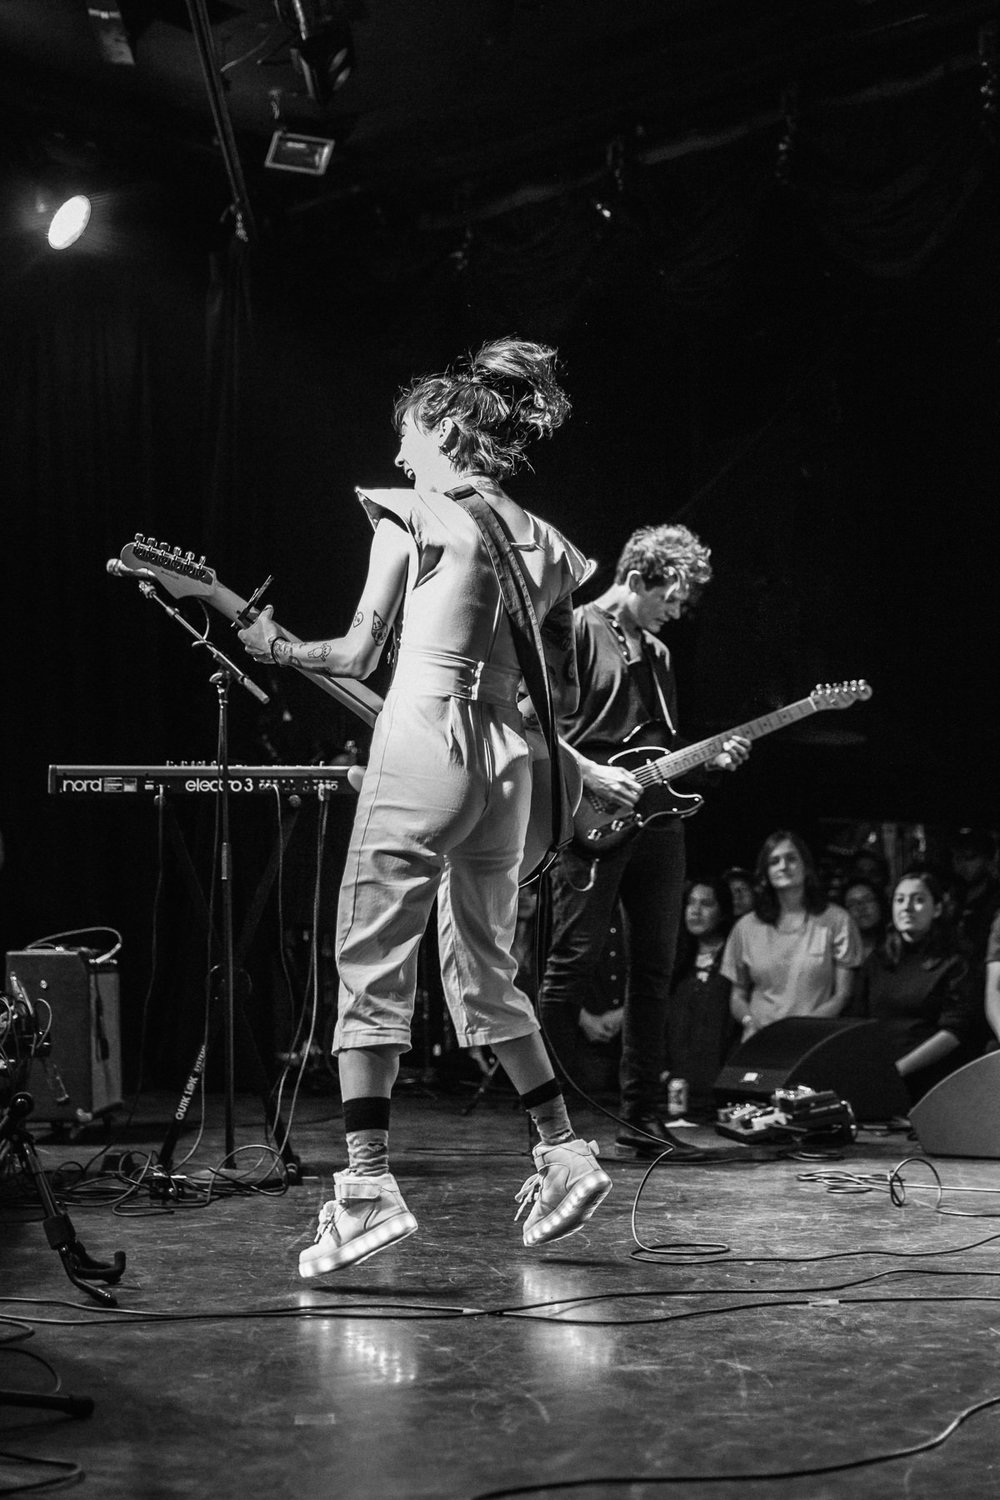 180418-kirby-gladstein-photograpy-japanese-breakfast-concert-the-roxy-loa-angeles-4858.jpg